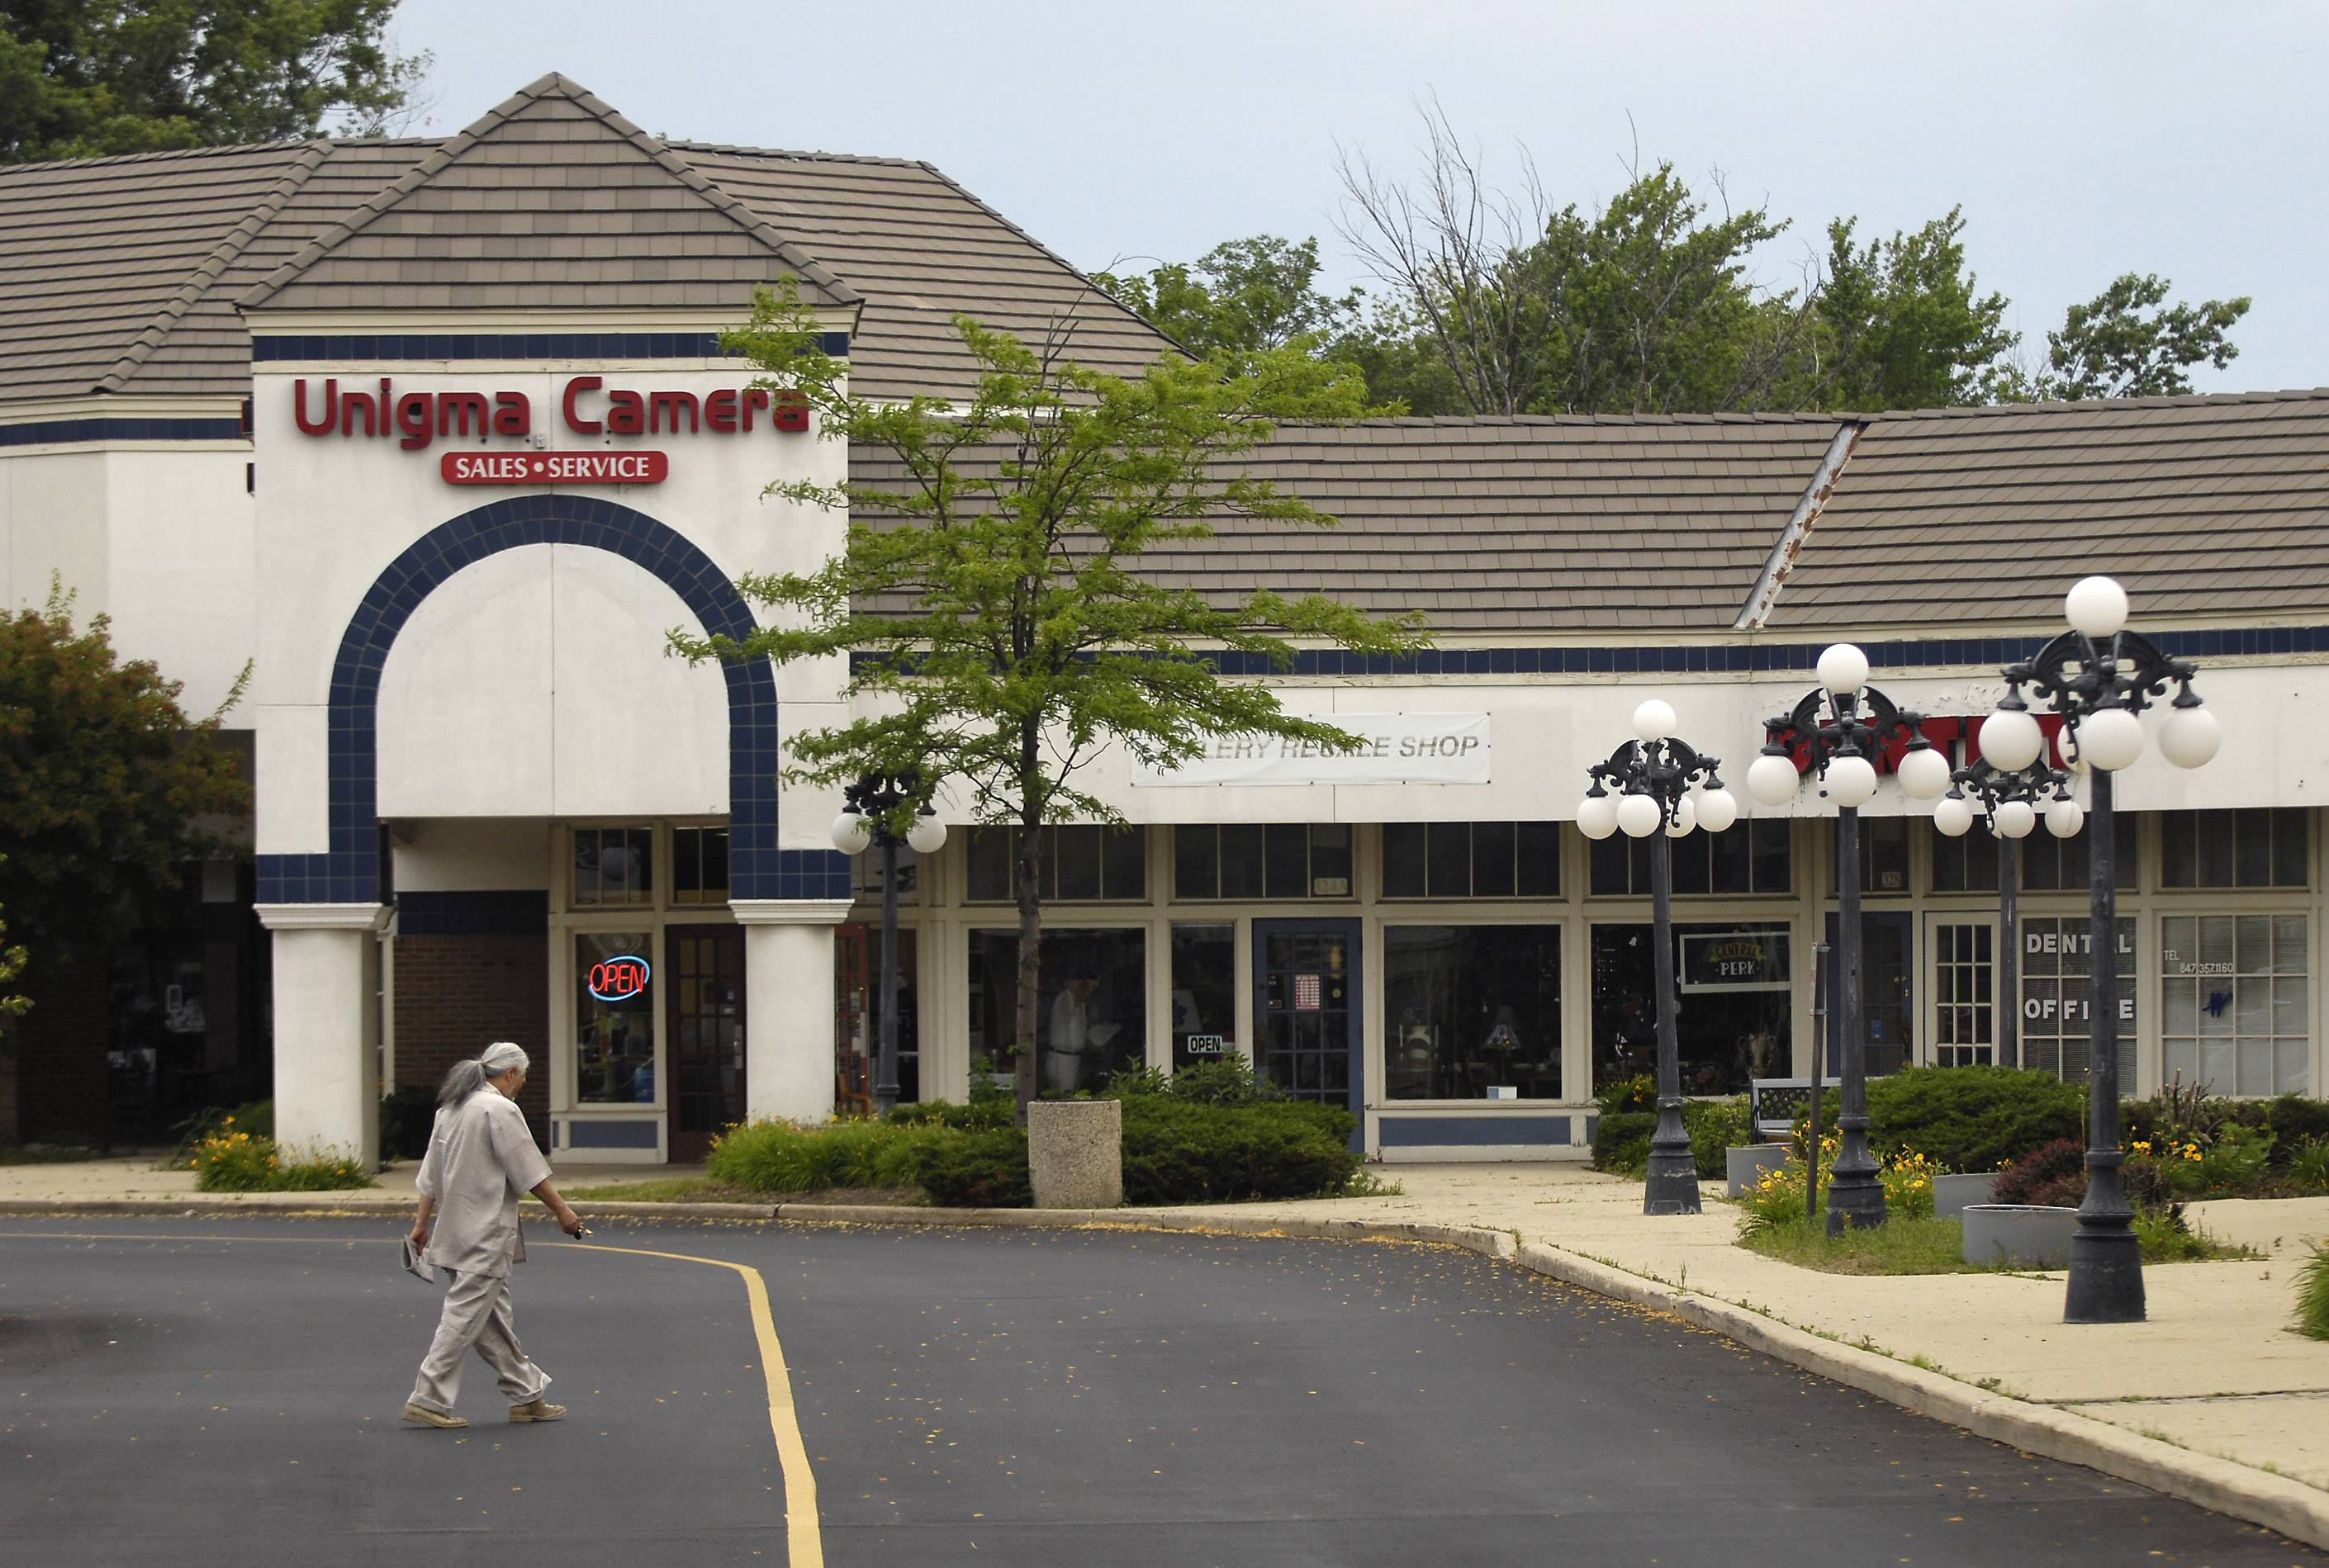 The owners of the International Plaza shopping center on Golf Road east of Arlington Heights Road are willing to sell the 13-acre site or have it redeveloped, according to village officials, who are hiring a consultant to assess market conditions in the area.